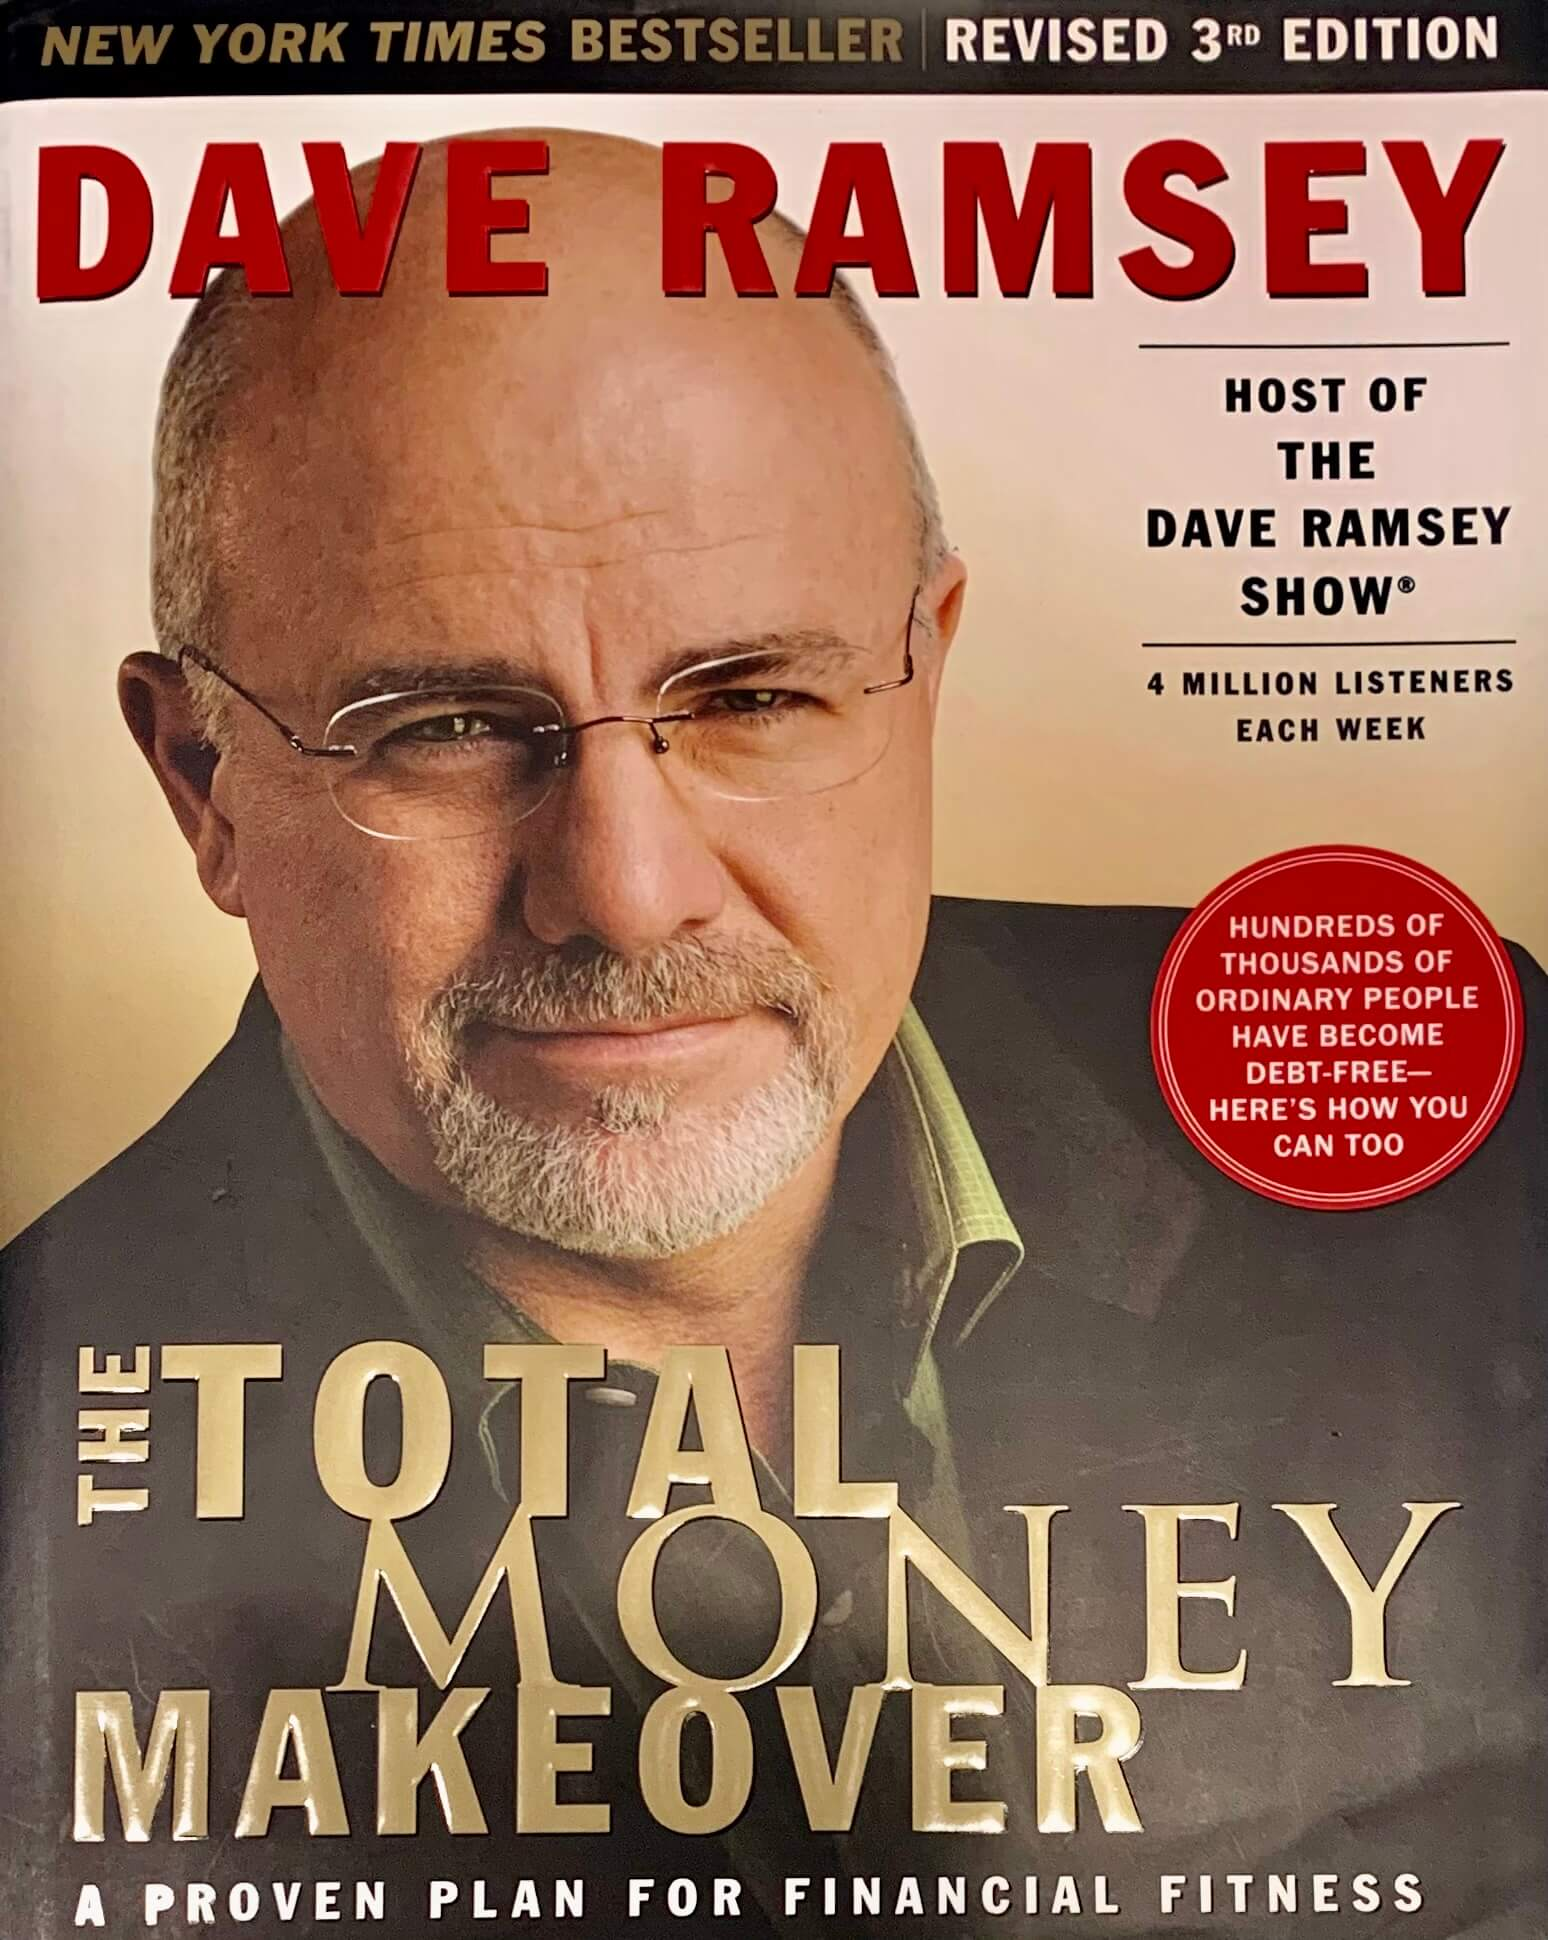 summary of The Total Money Makeover, Book Written by Dave Ramsey